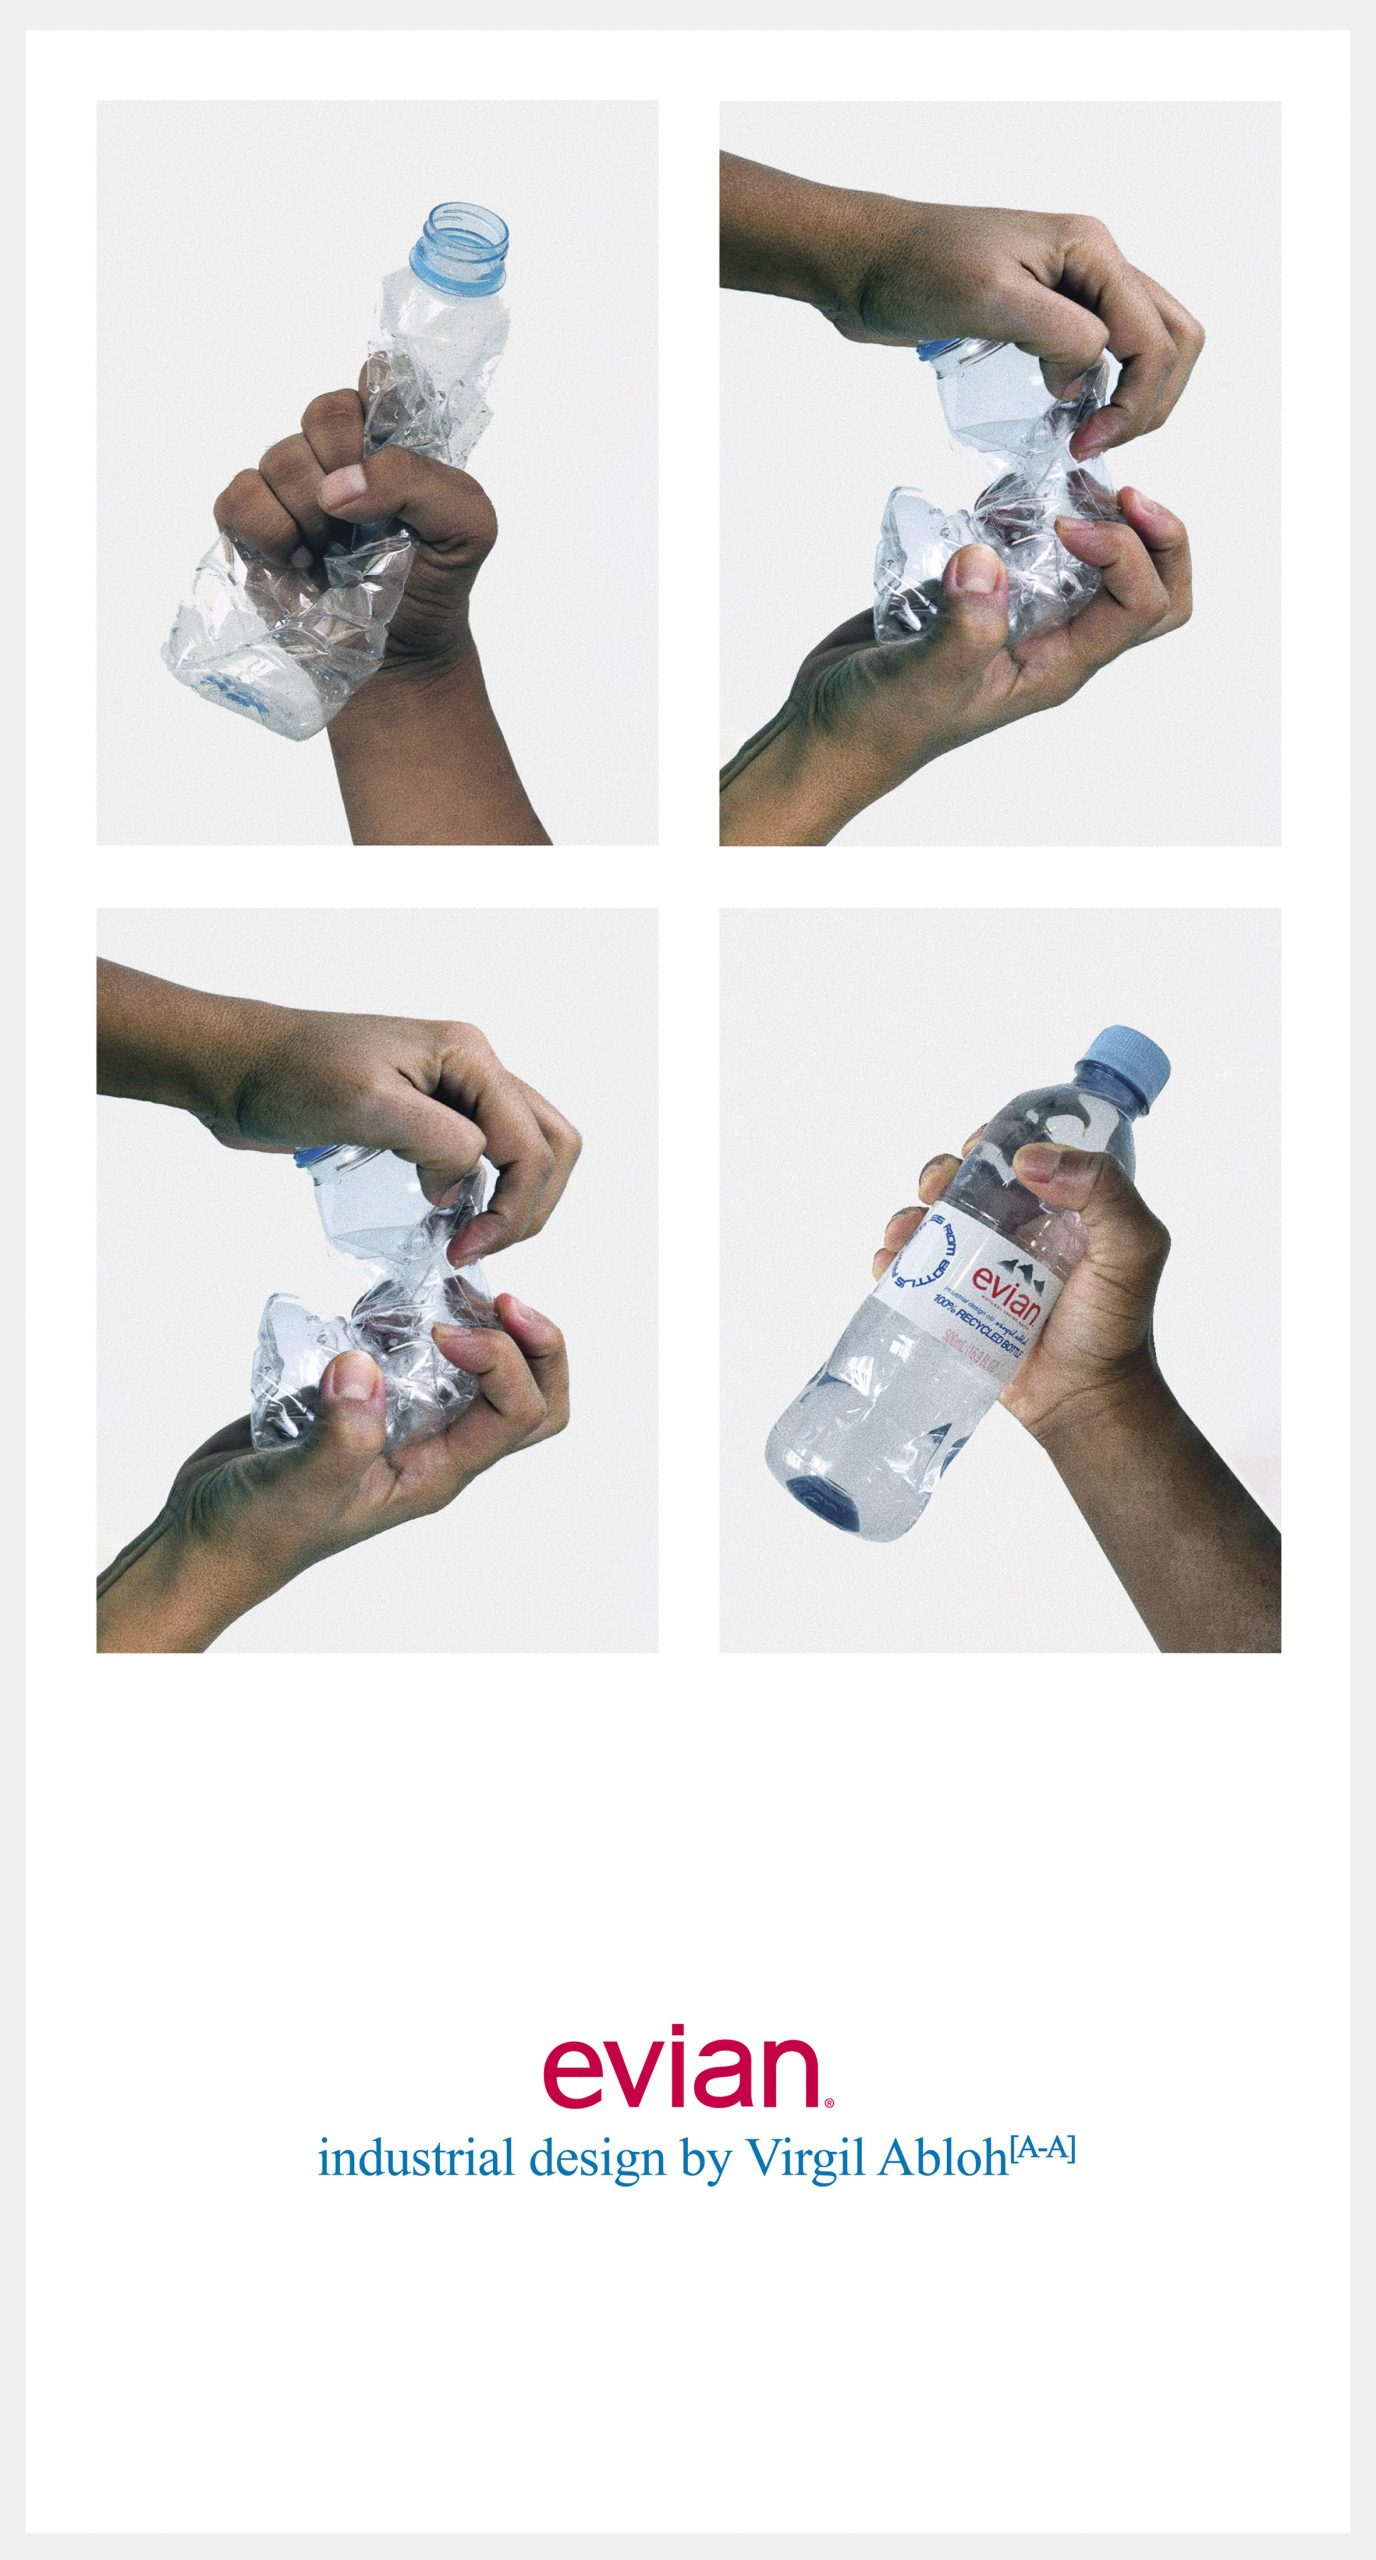 Manifesto recycled plastic bottle by Virgil Abloh for Evian